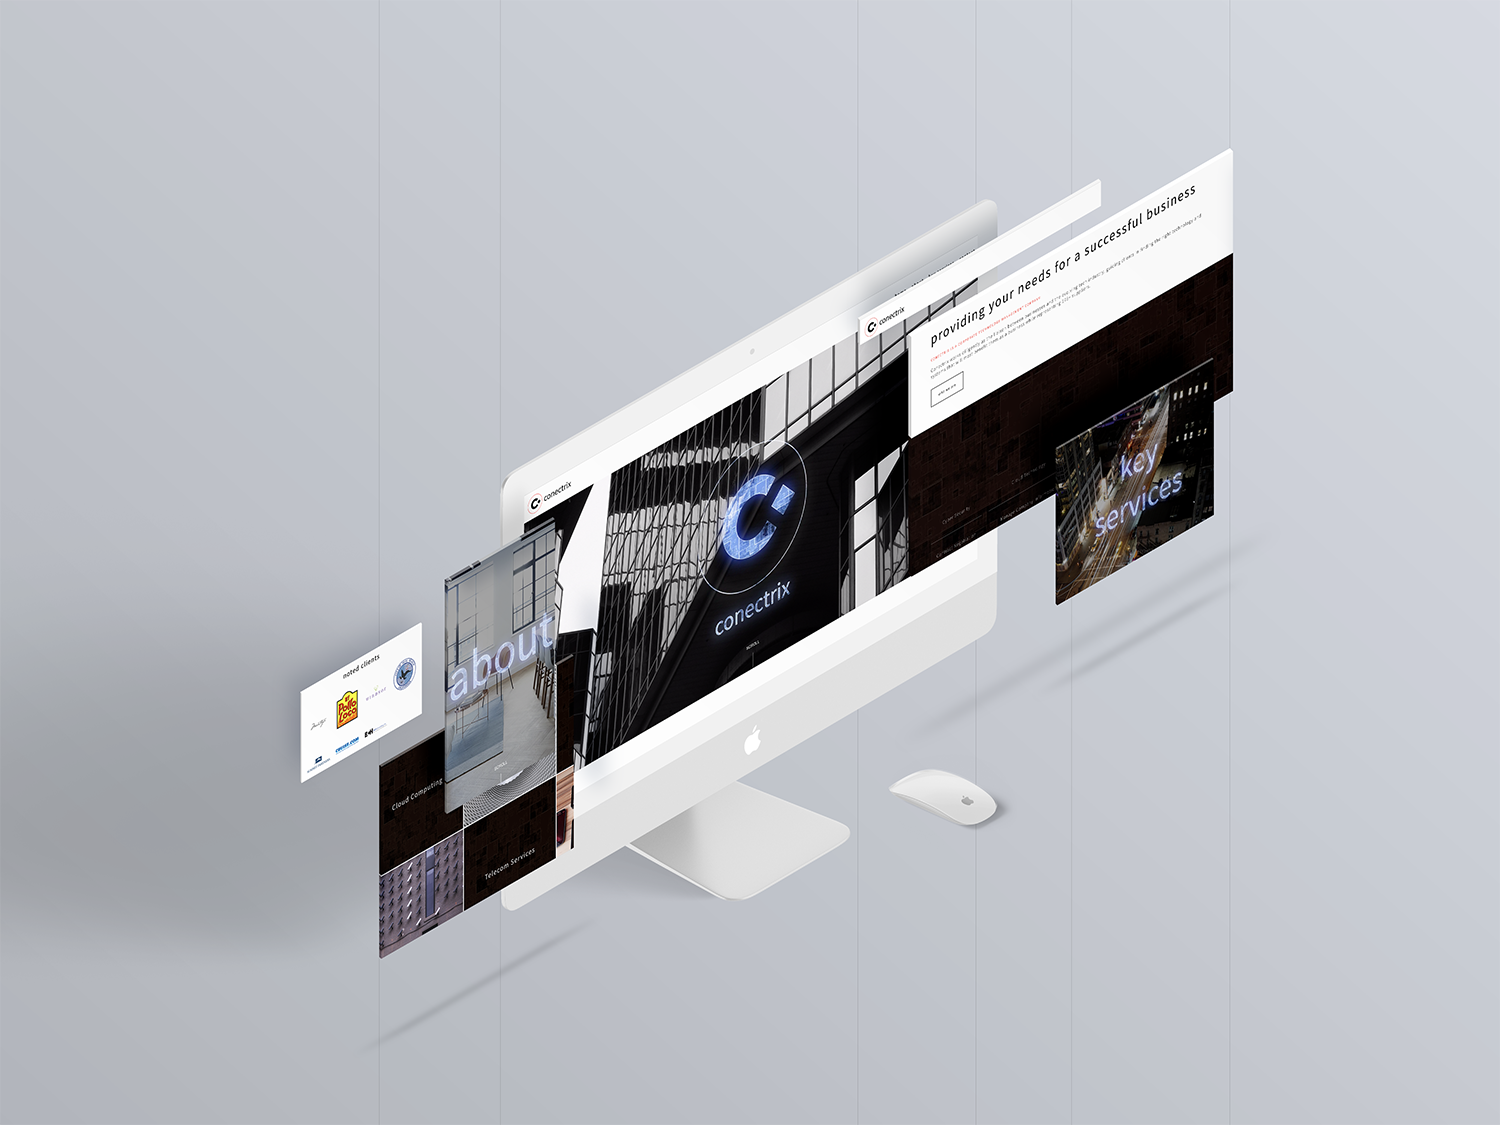 Conectrix_The Sceens - Perspective PSD Mockup - by Tranmautritam 1500px.png